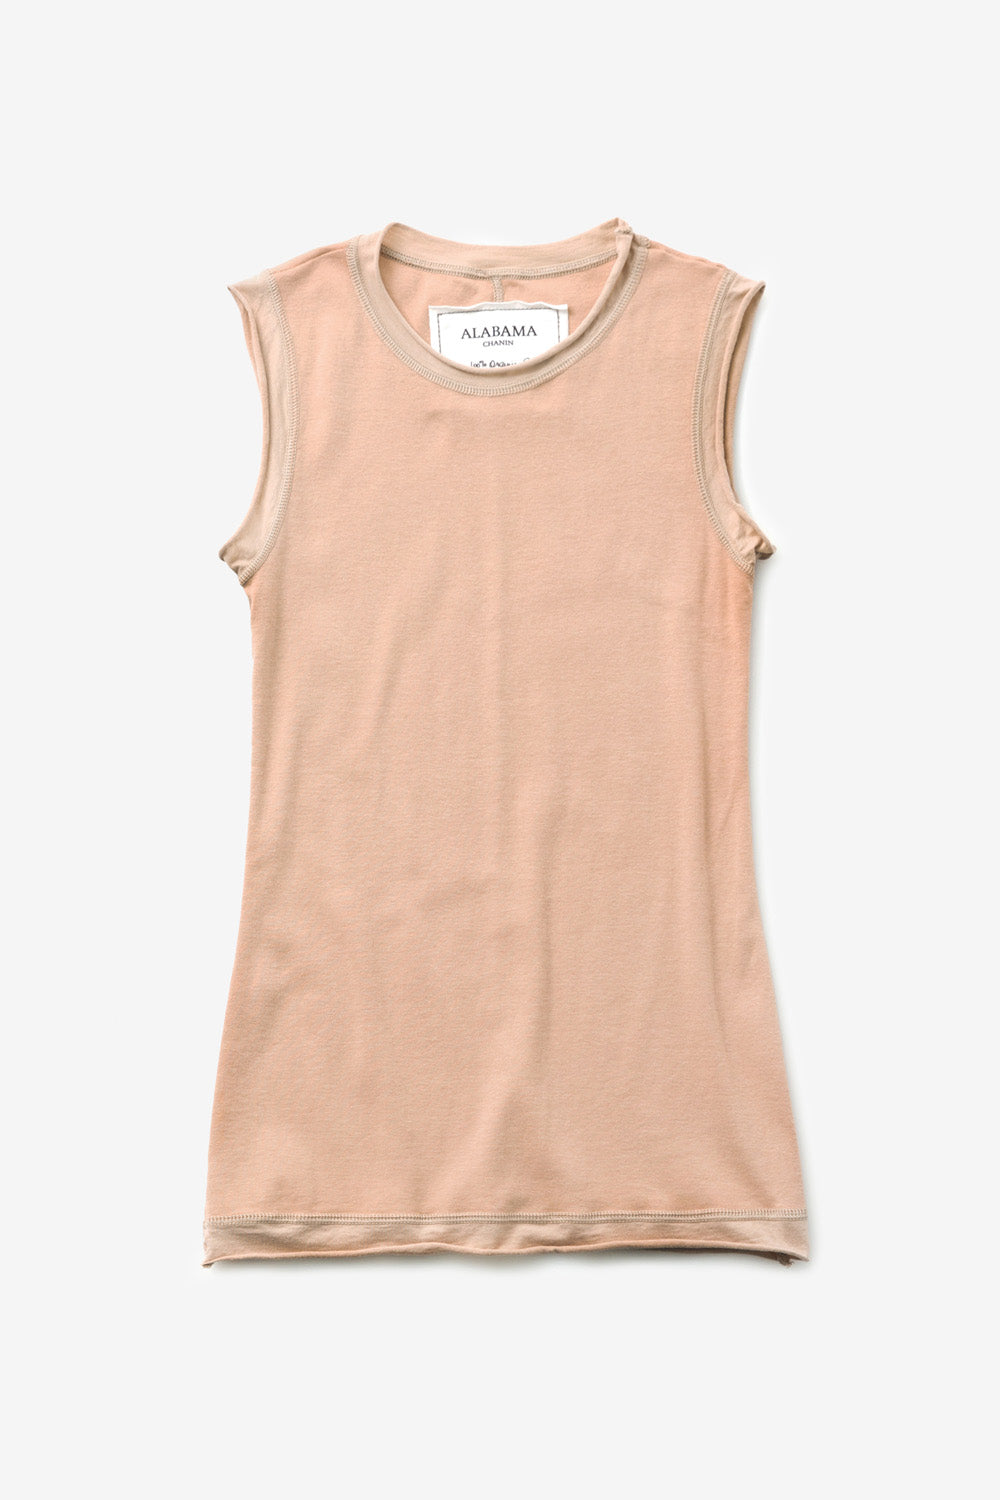 Alabama Chanin The Rib Crew Sleeveless Women's Organic Cotton Layering Top in Light Pink